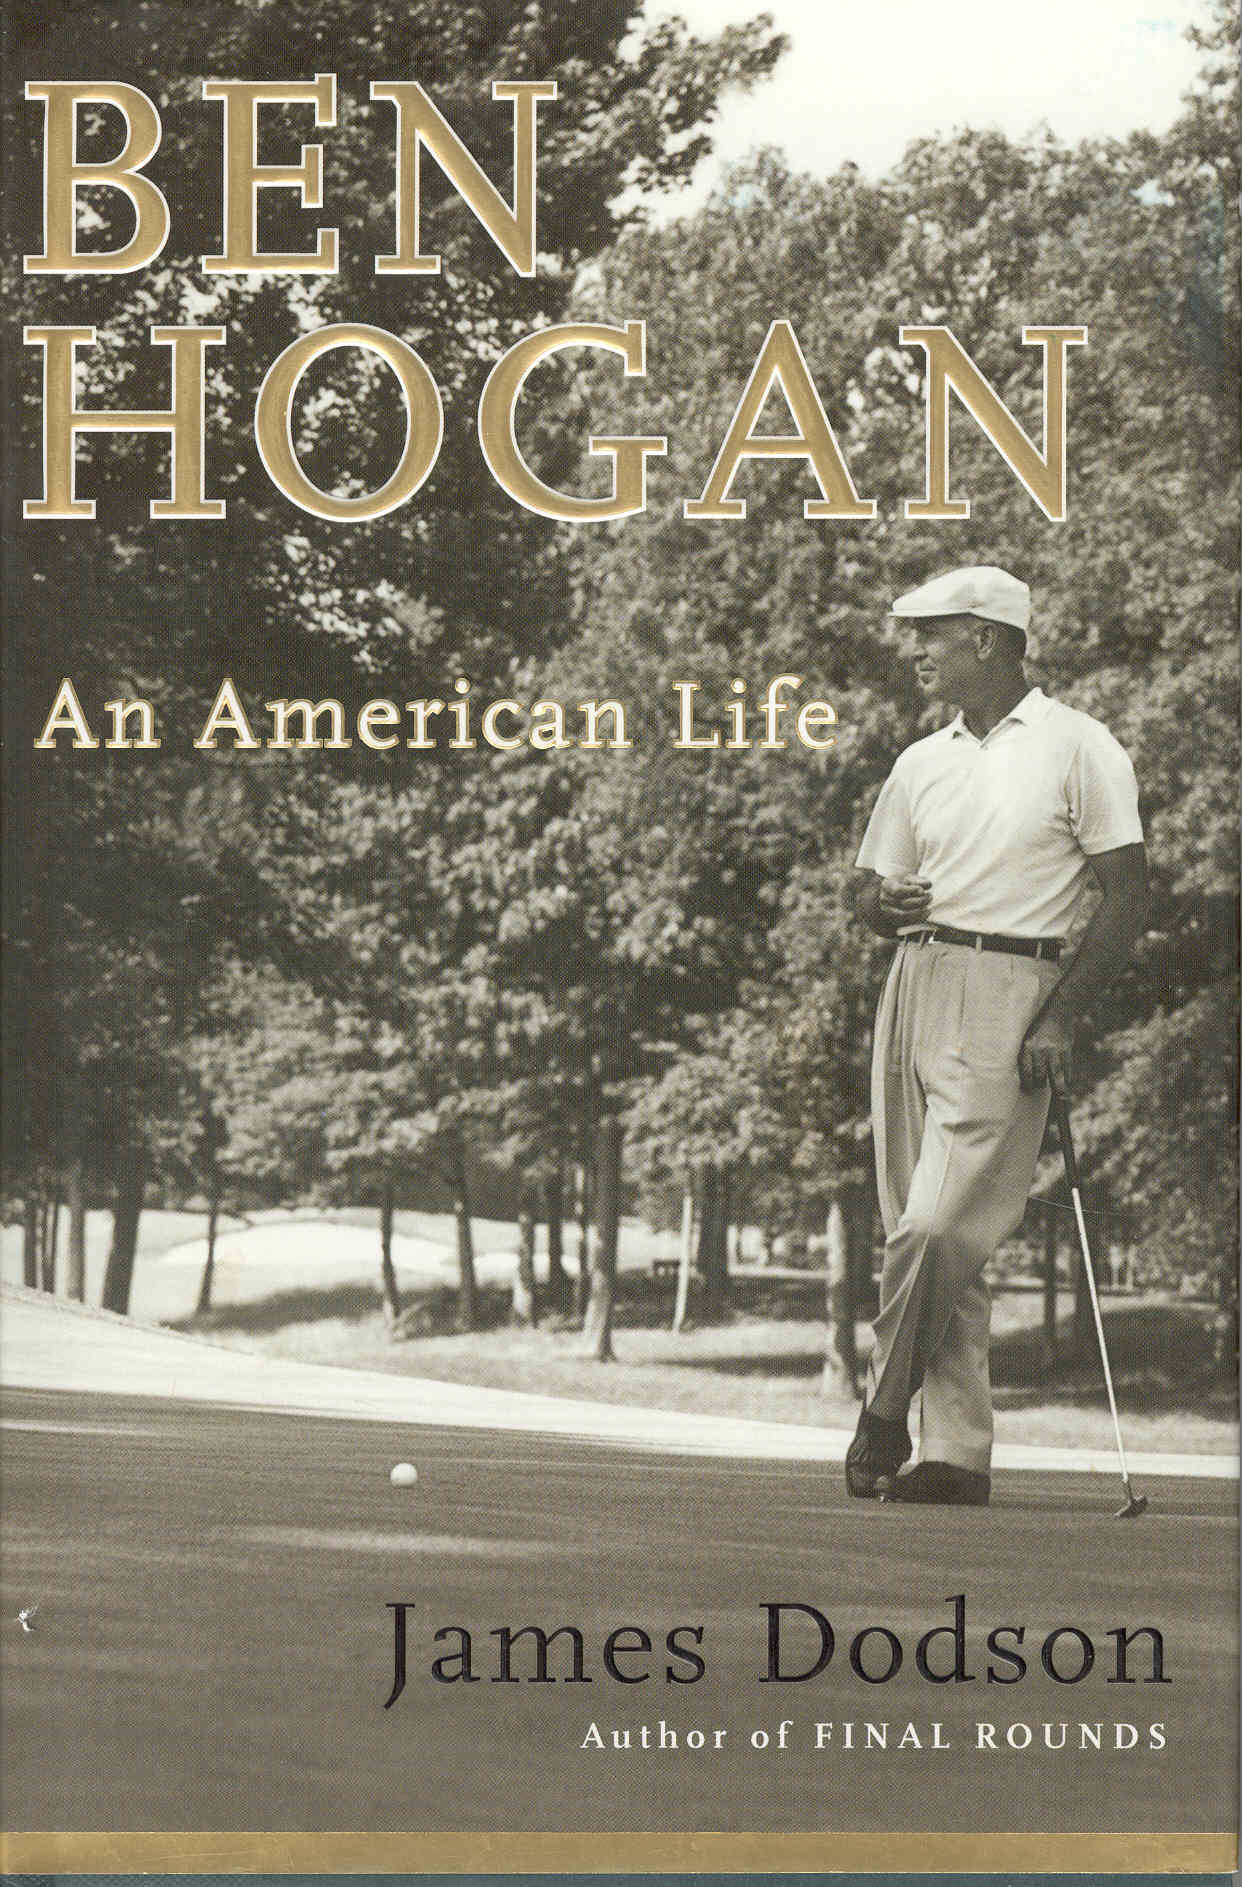 the life and career of ben hogan View the ben hogan timeline going all the way back to 1912 where it all started the timeline shows key events in ben hogan's life, going up to 1997.